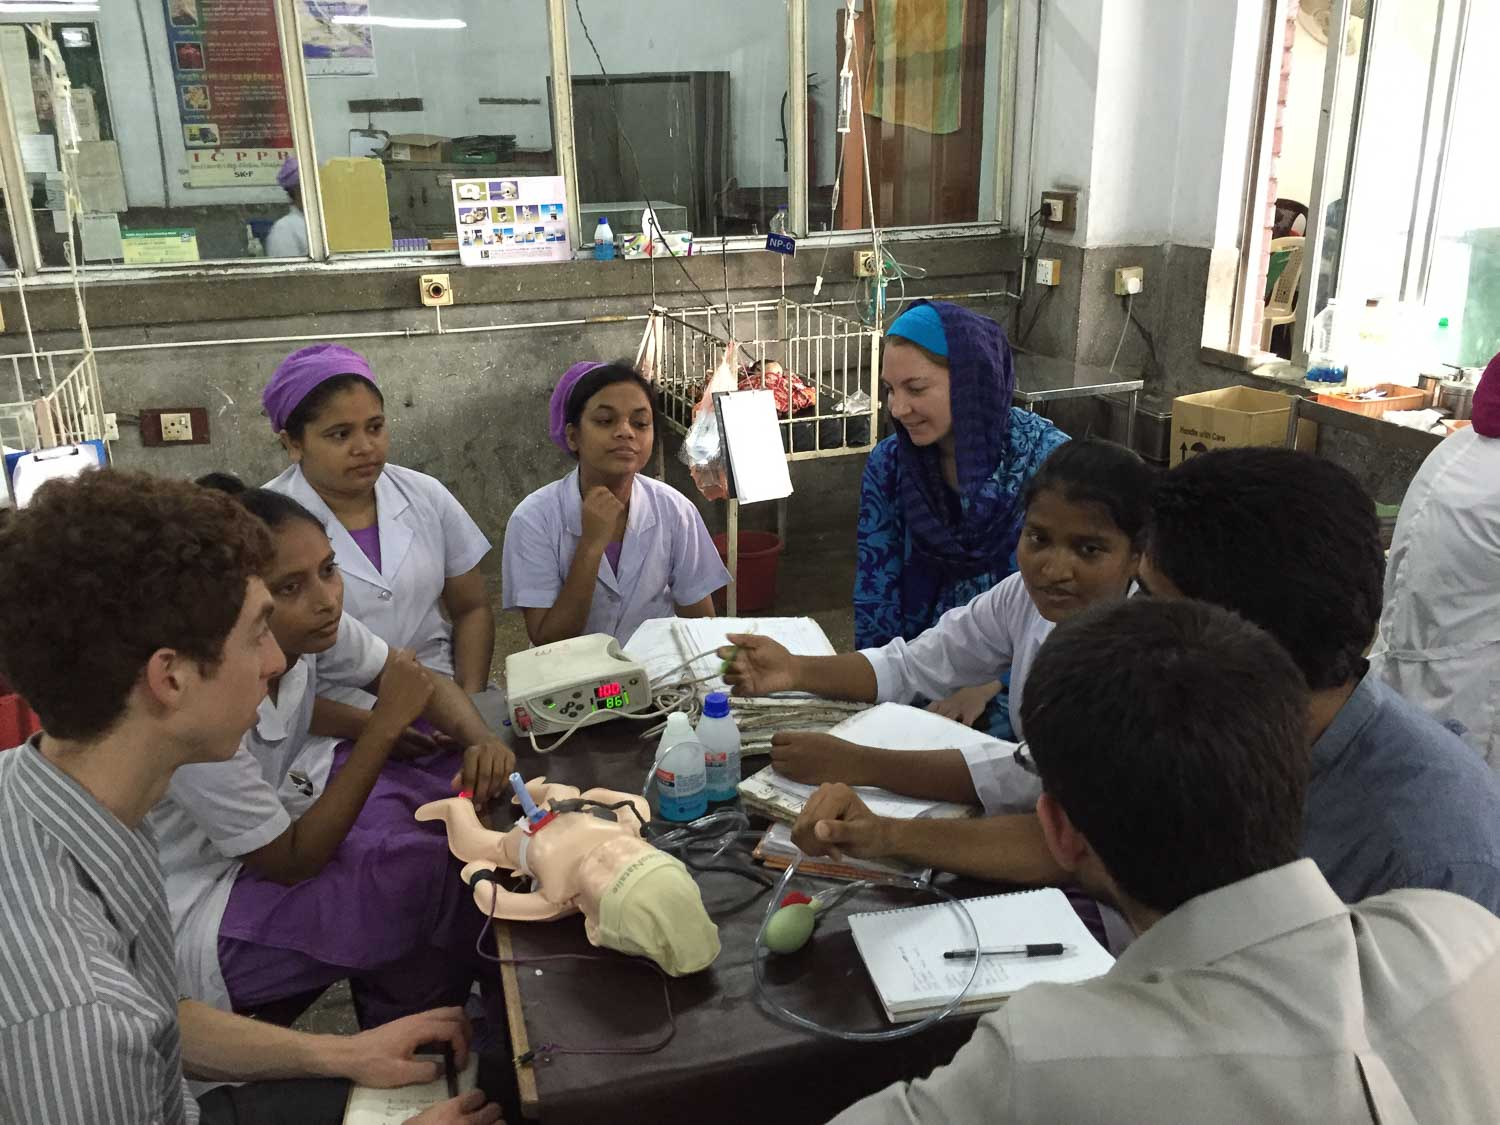 Center for Innovation & Design students learn neonatal care from nurses in Bangladesh, August 2015